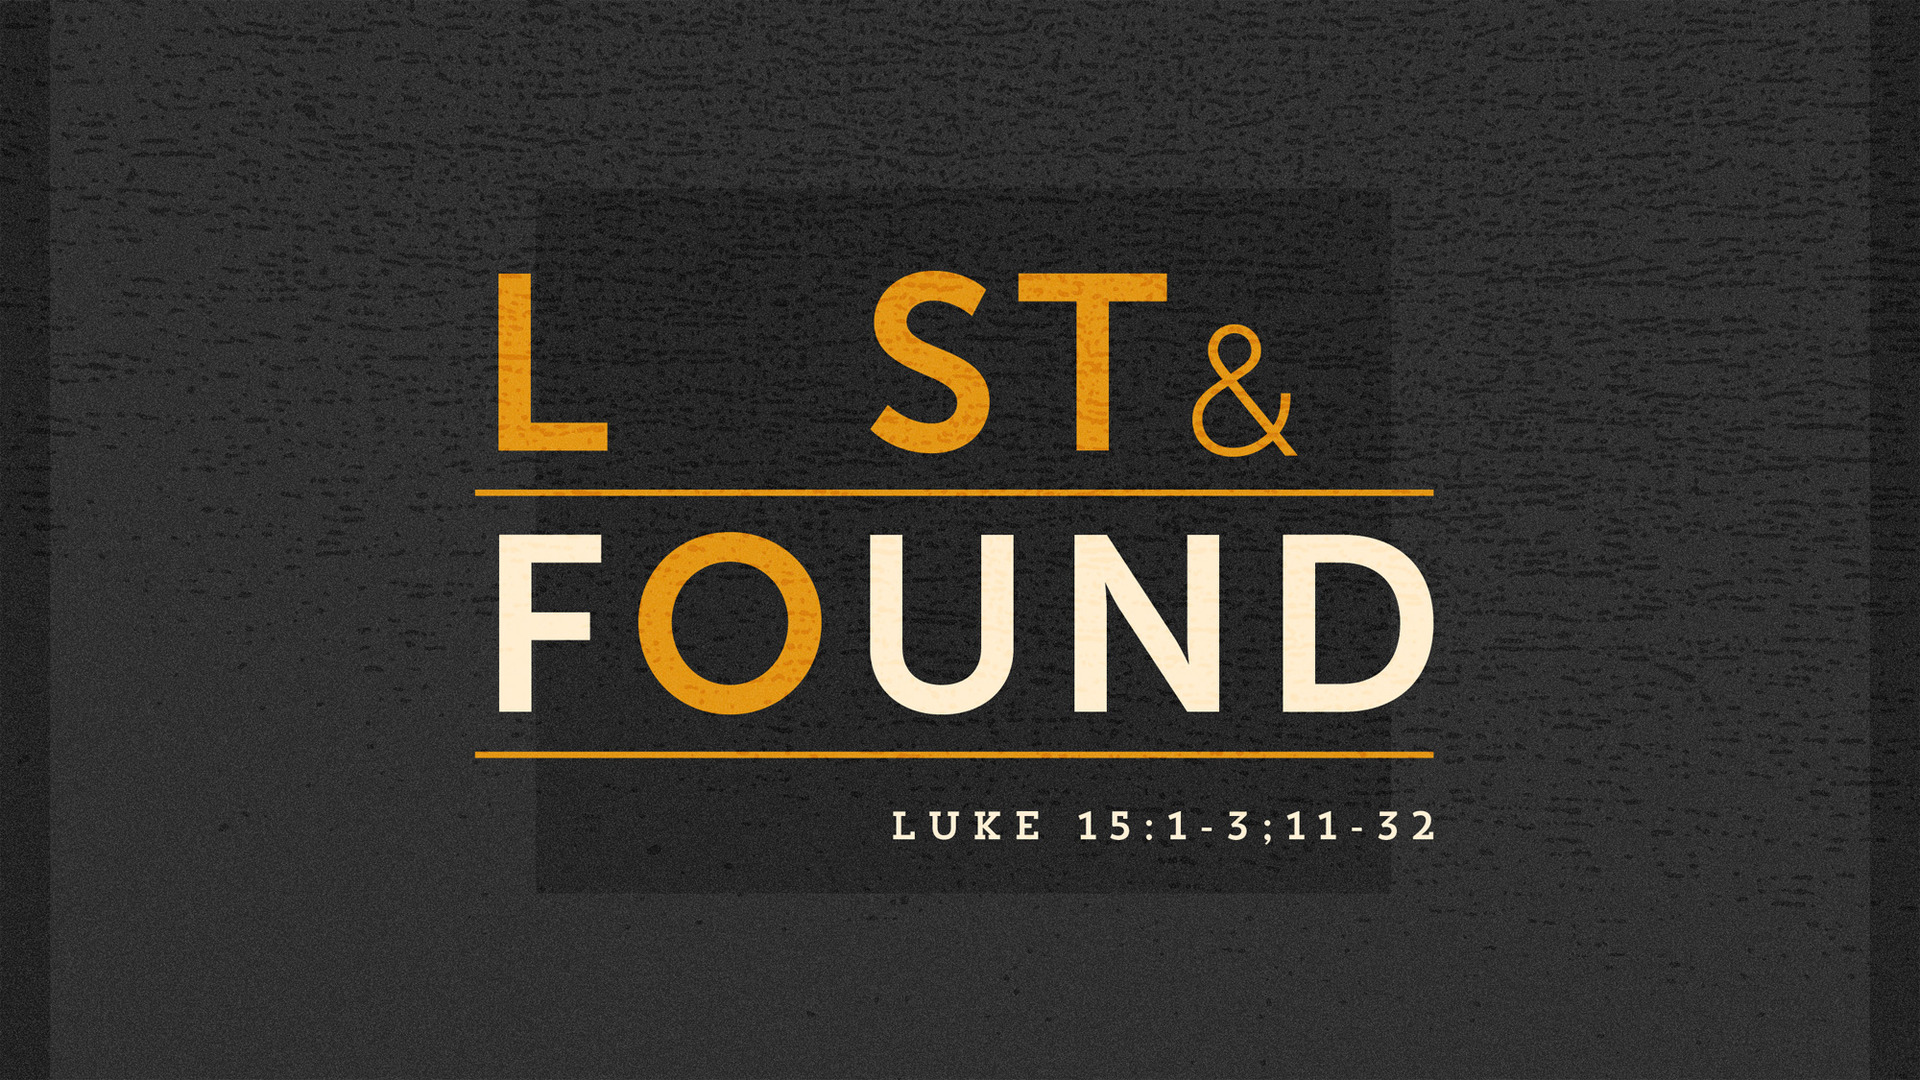 lost_found-title-1-Wide 16x9